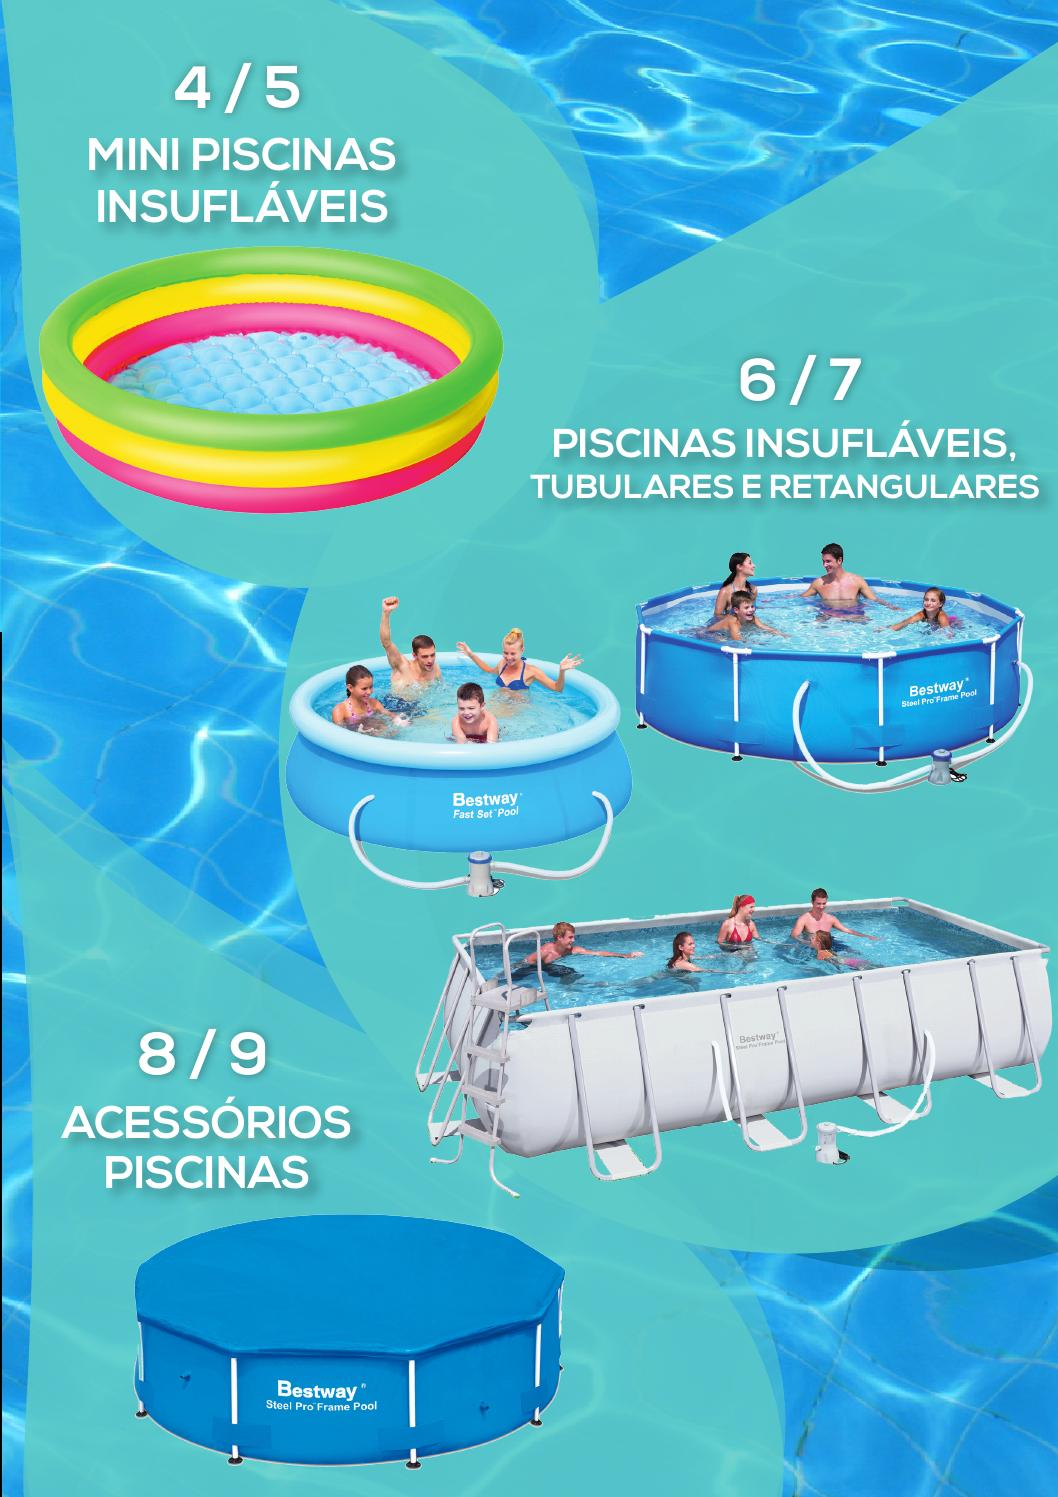 Piscinas Tubulares Bestway Oferta De Piscinas Decathlon Verão 2014 By Decathlon